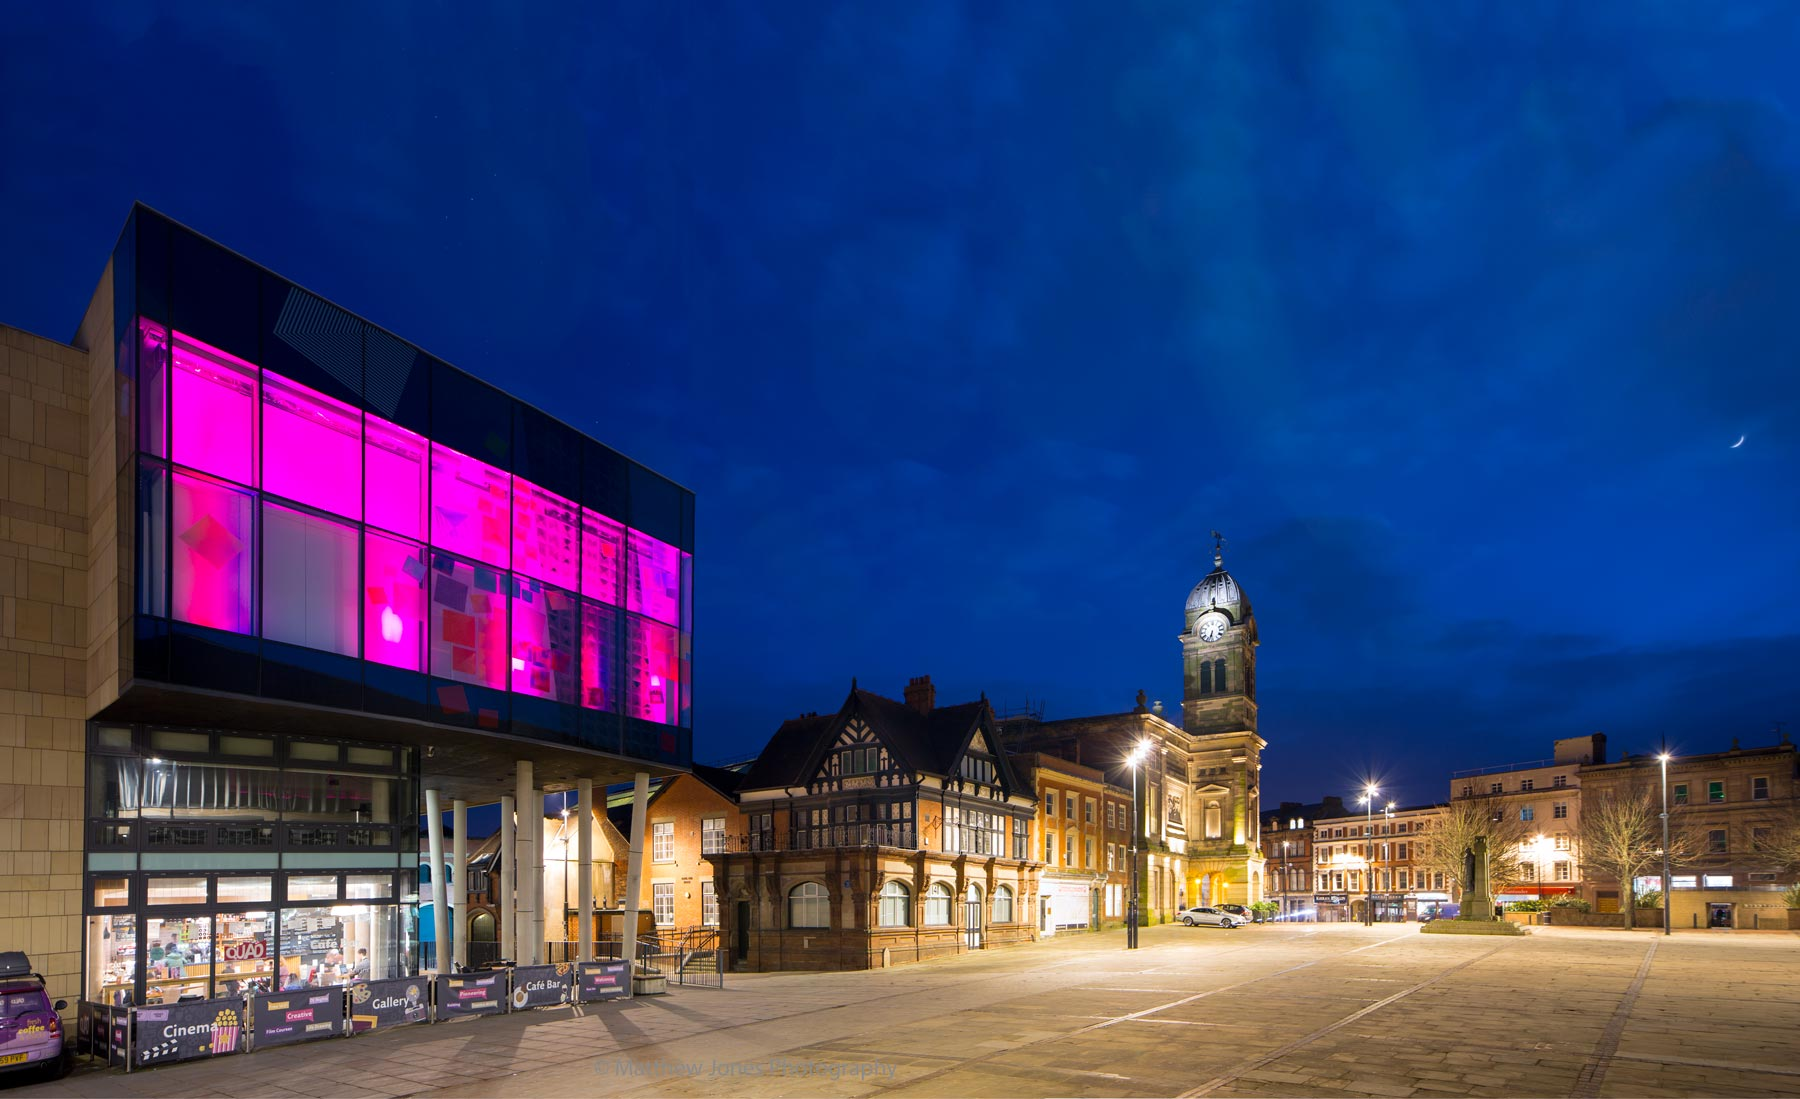 Derby QUAD and the Guildhall Theatre